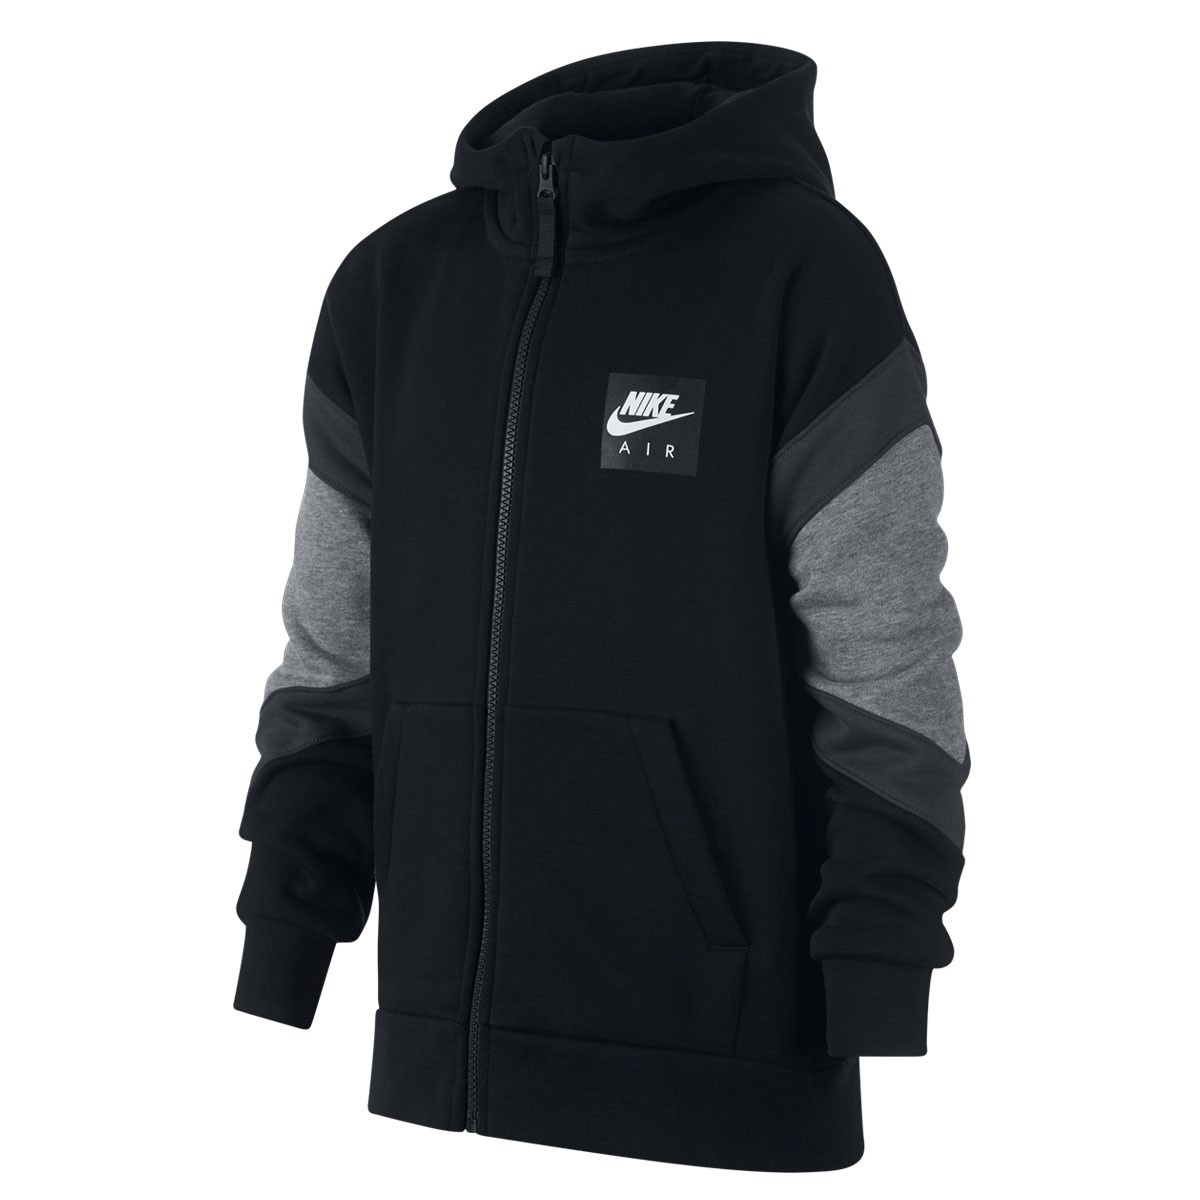 Nike Air Hoodie Jacket 'Black'